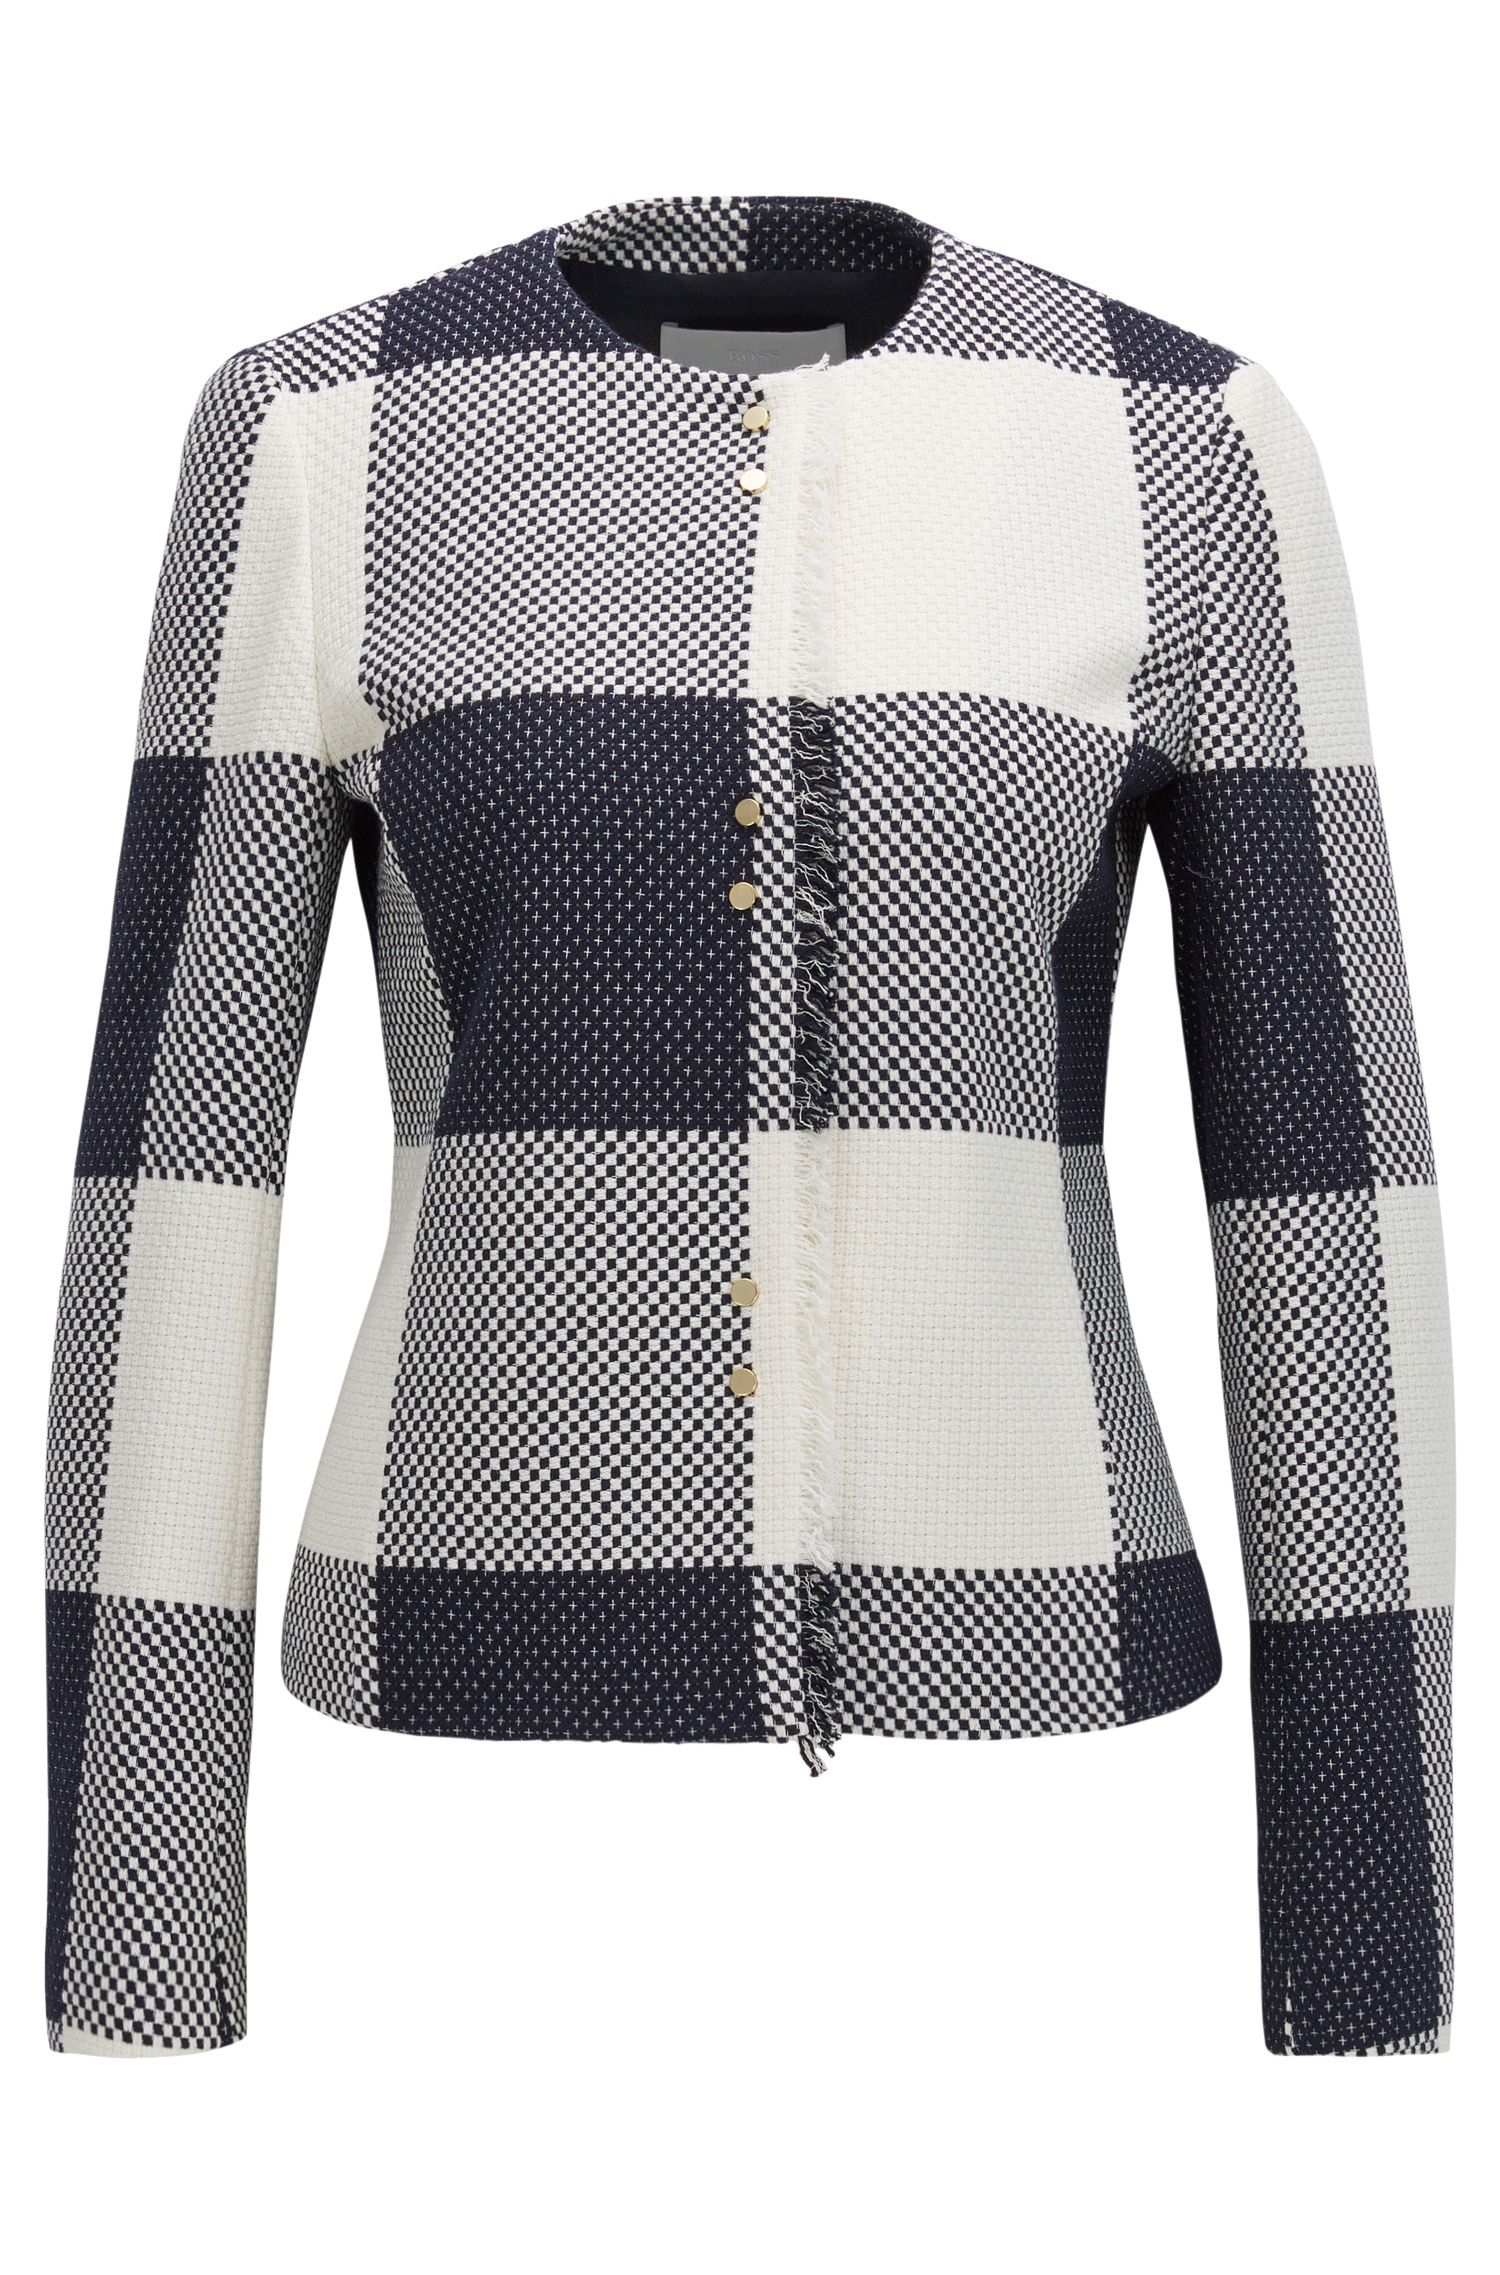 Checked-cotton jacket with fringing